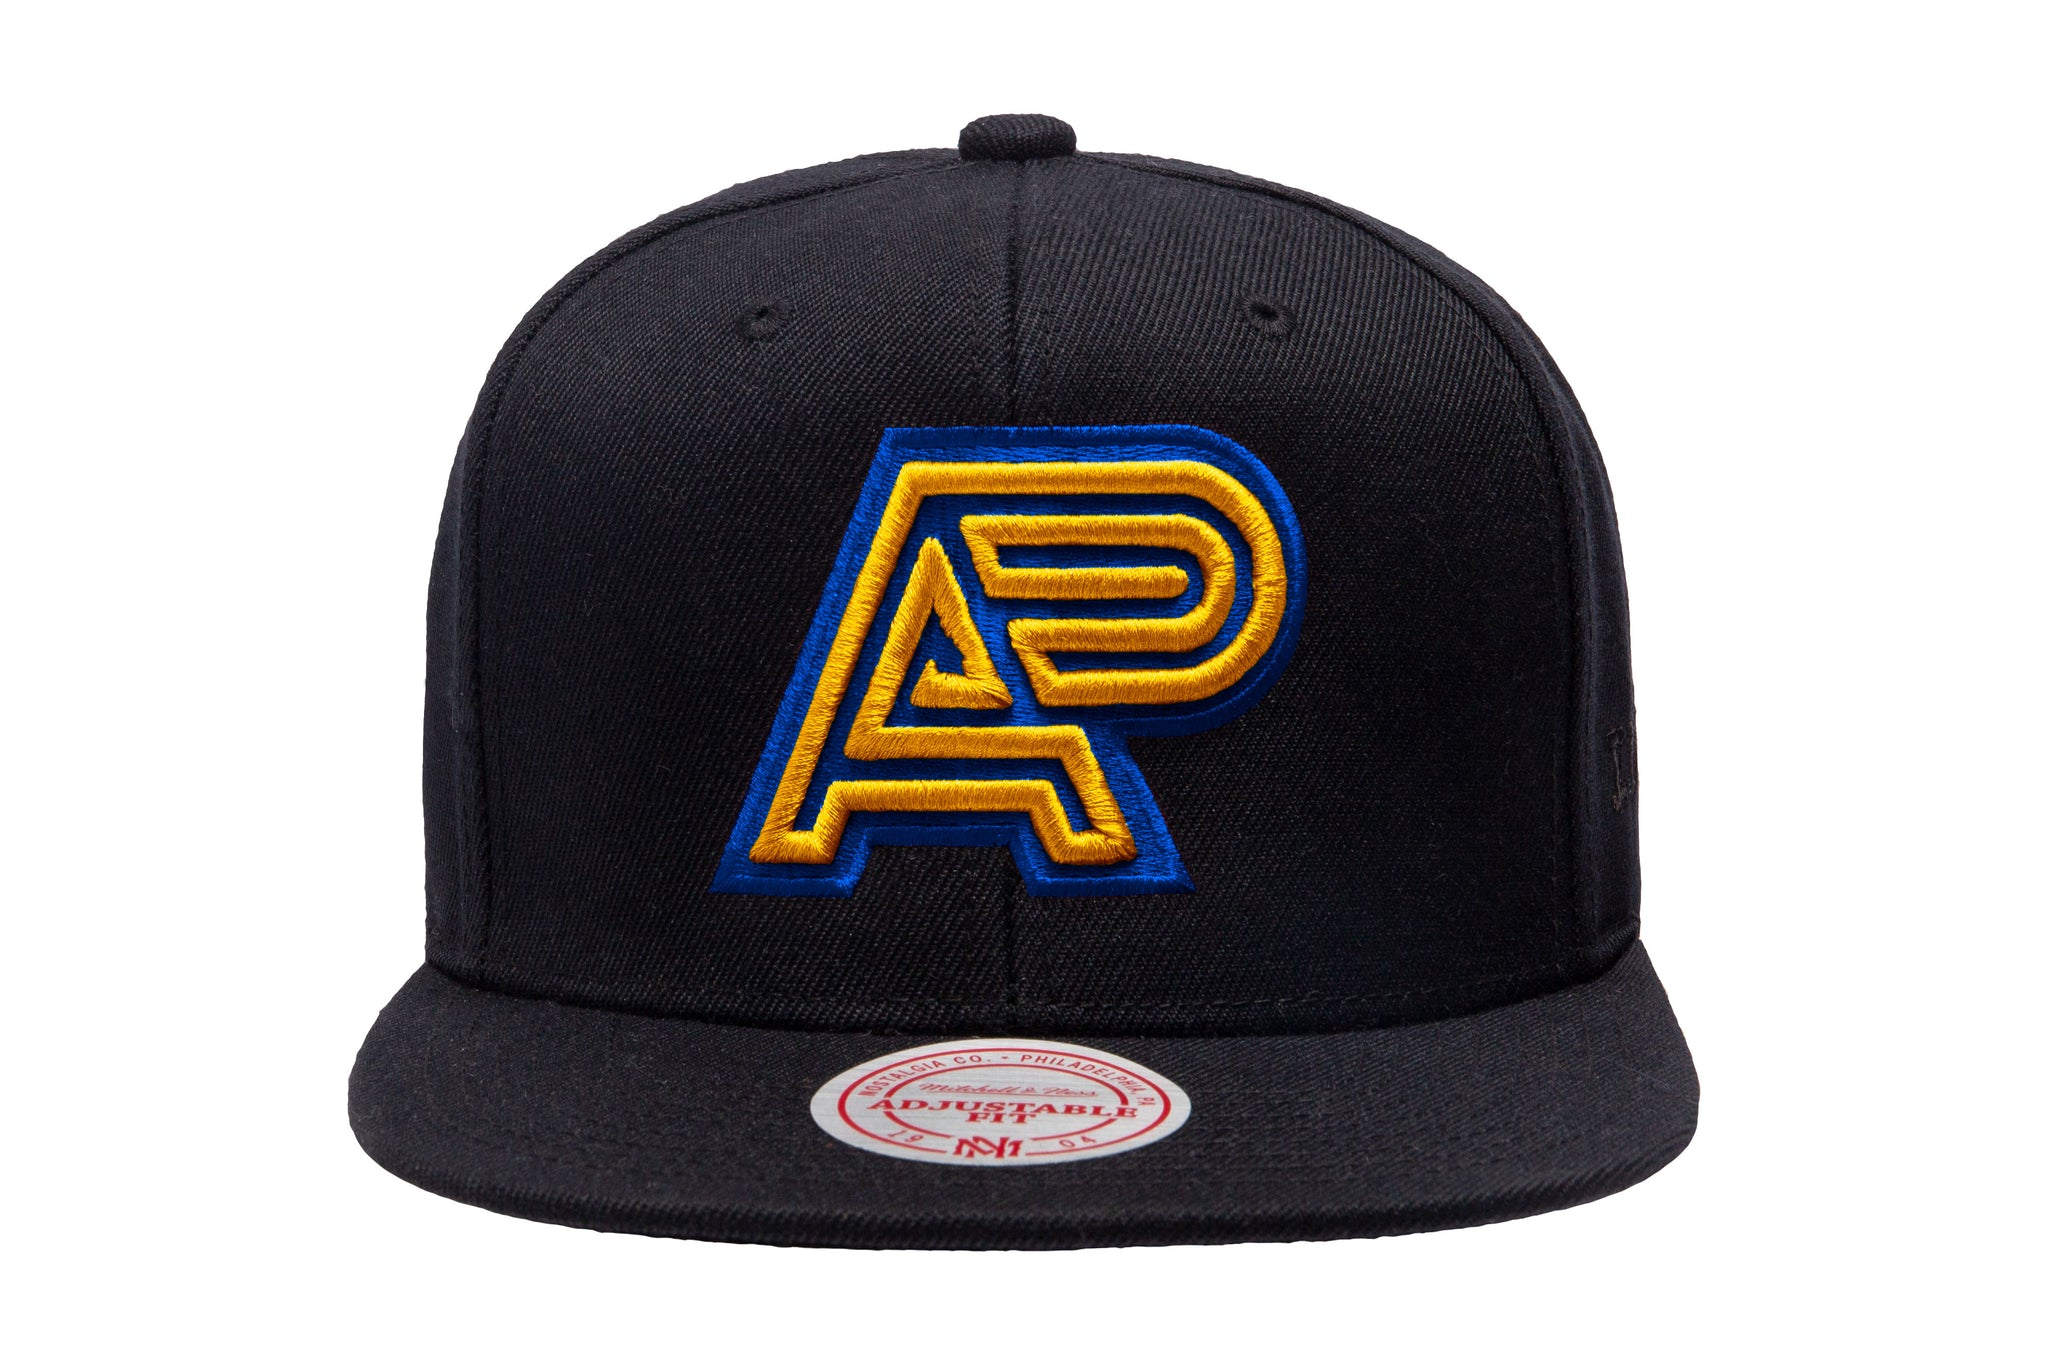 Q1 19 A&P X MITCHELL & NESS SNAPBACK (BLUE/YELLOW) (FULFILLMENT)